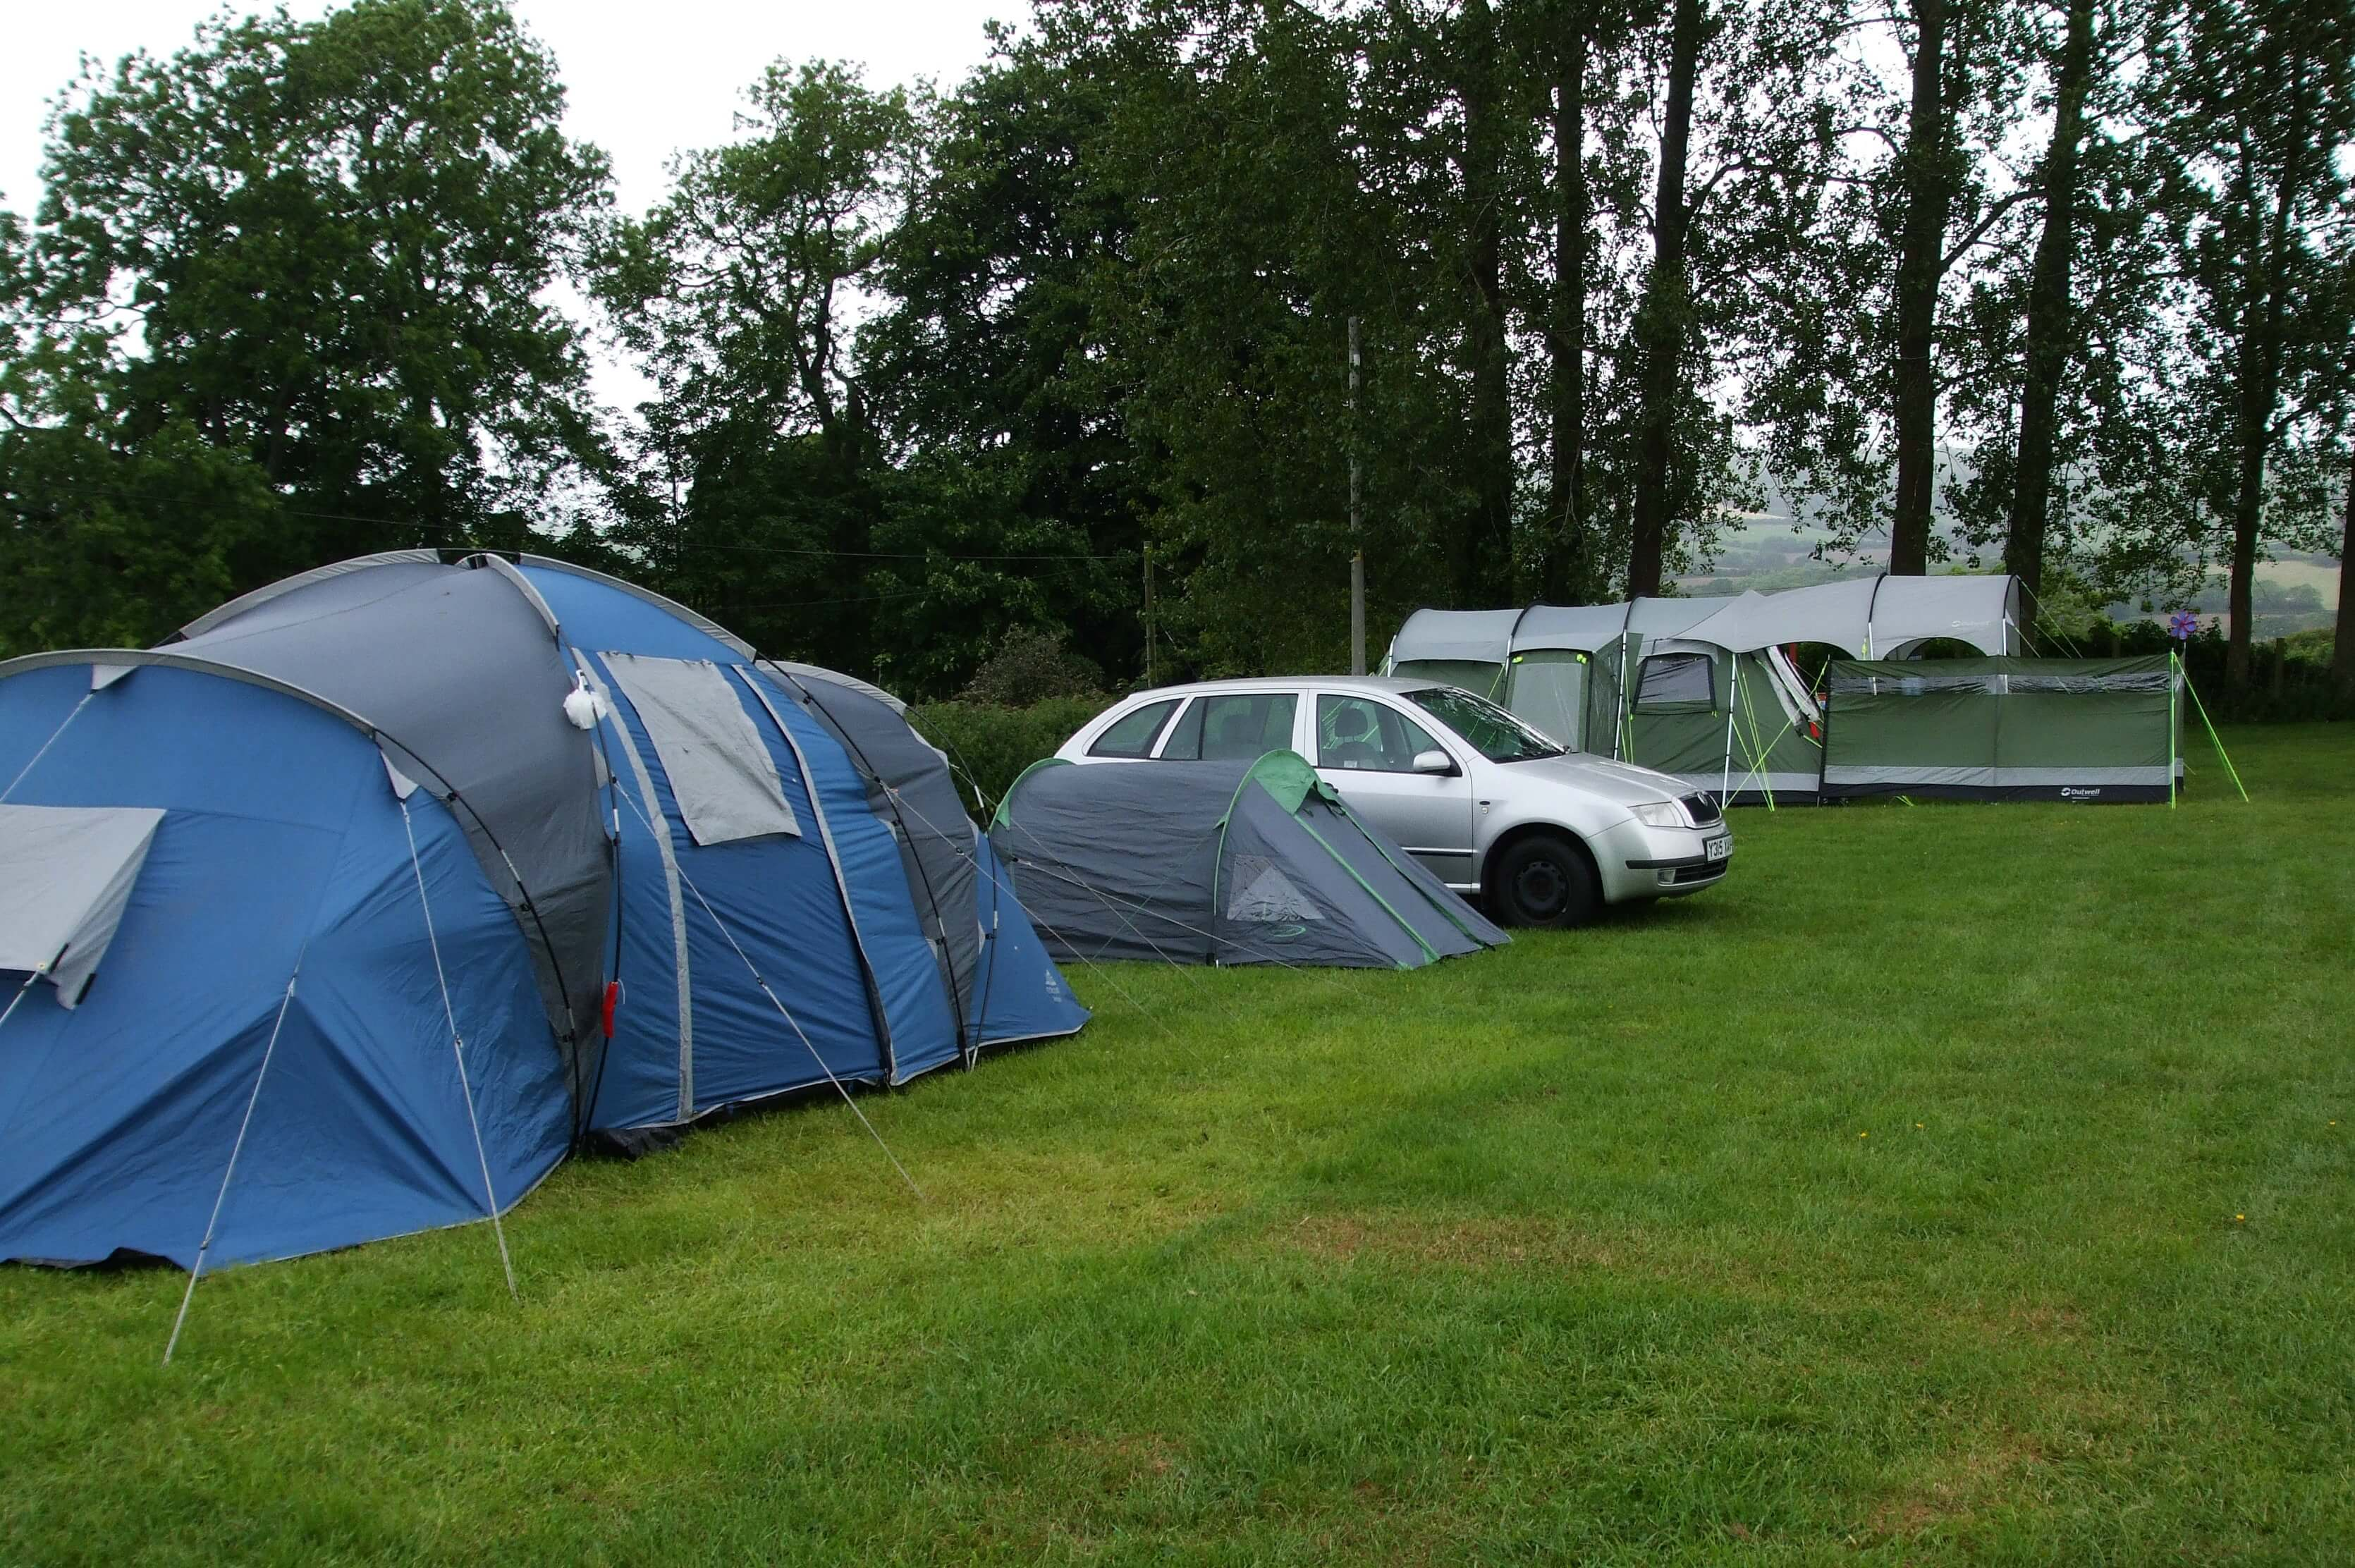 Car and tents set up in field